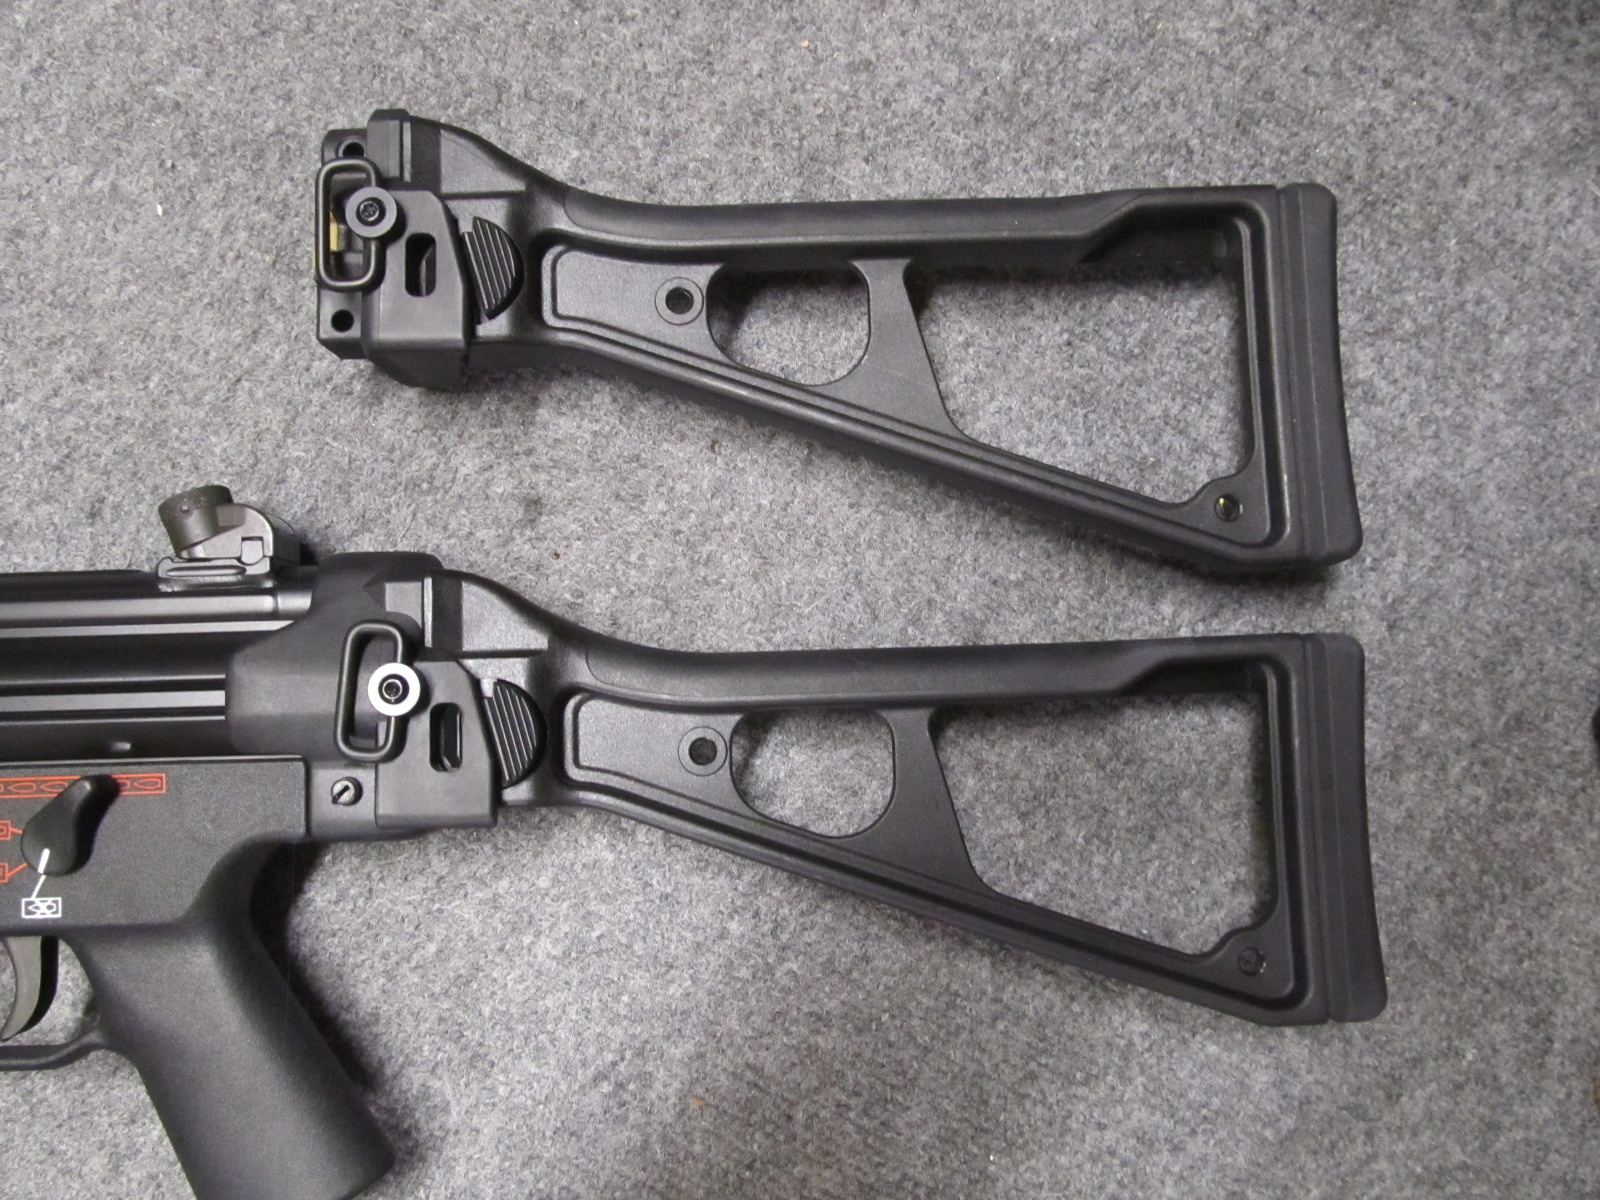 MP5 A3 stock or B&T Stock-img_6275.jpg